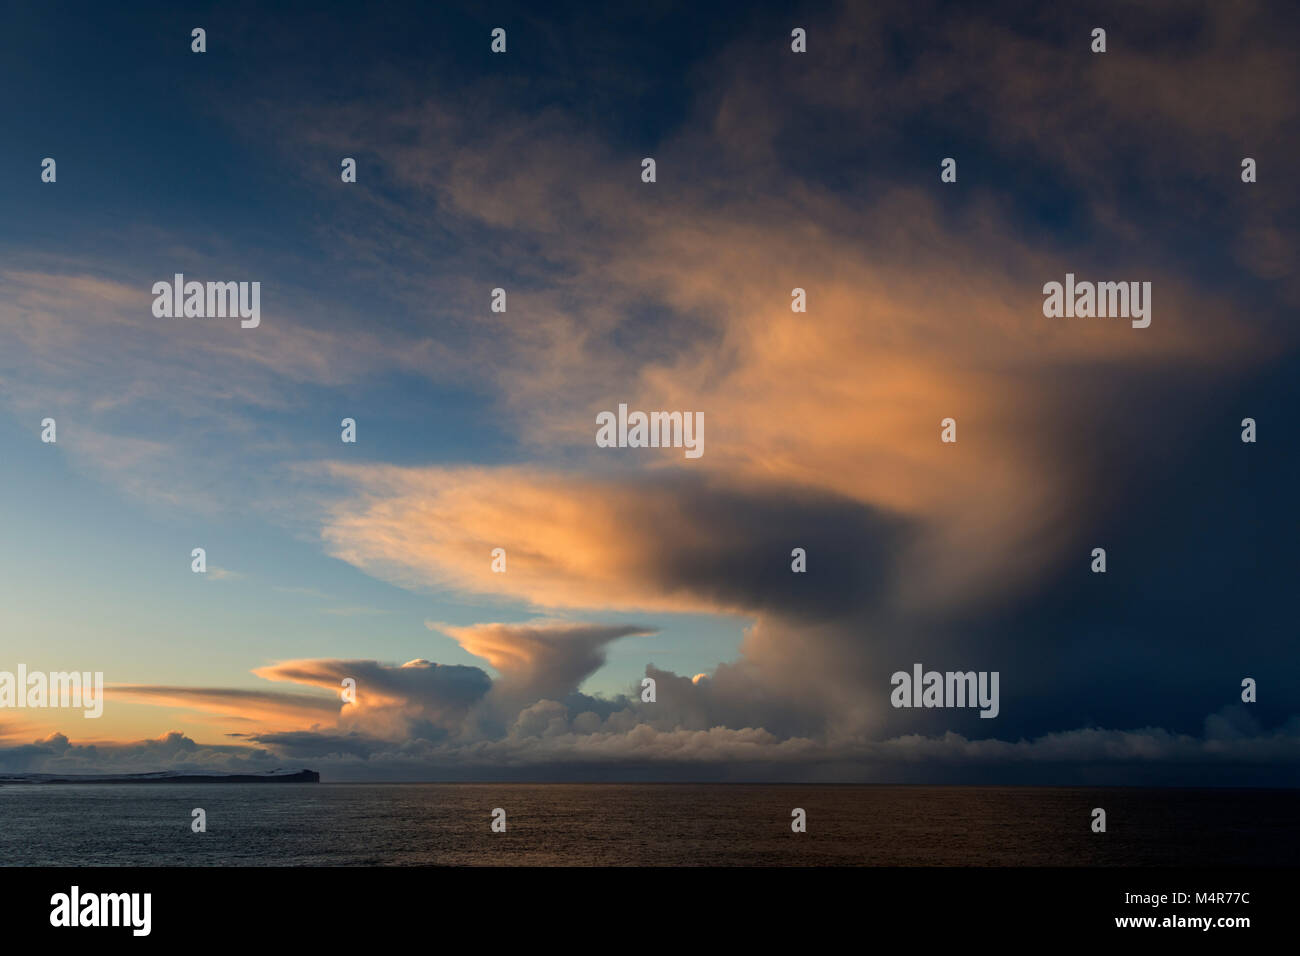 Cumulonimbus cloud at sunset over Dunnet Head and the Pentland Firth, from St. John's Point, Caithness, Scotland, - Stock Image